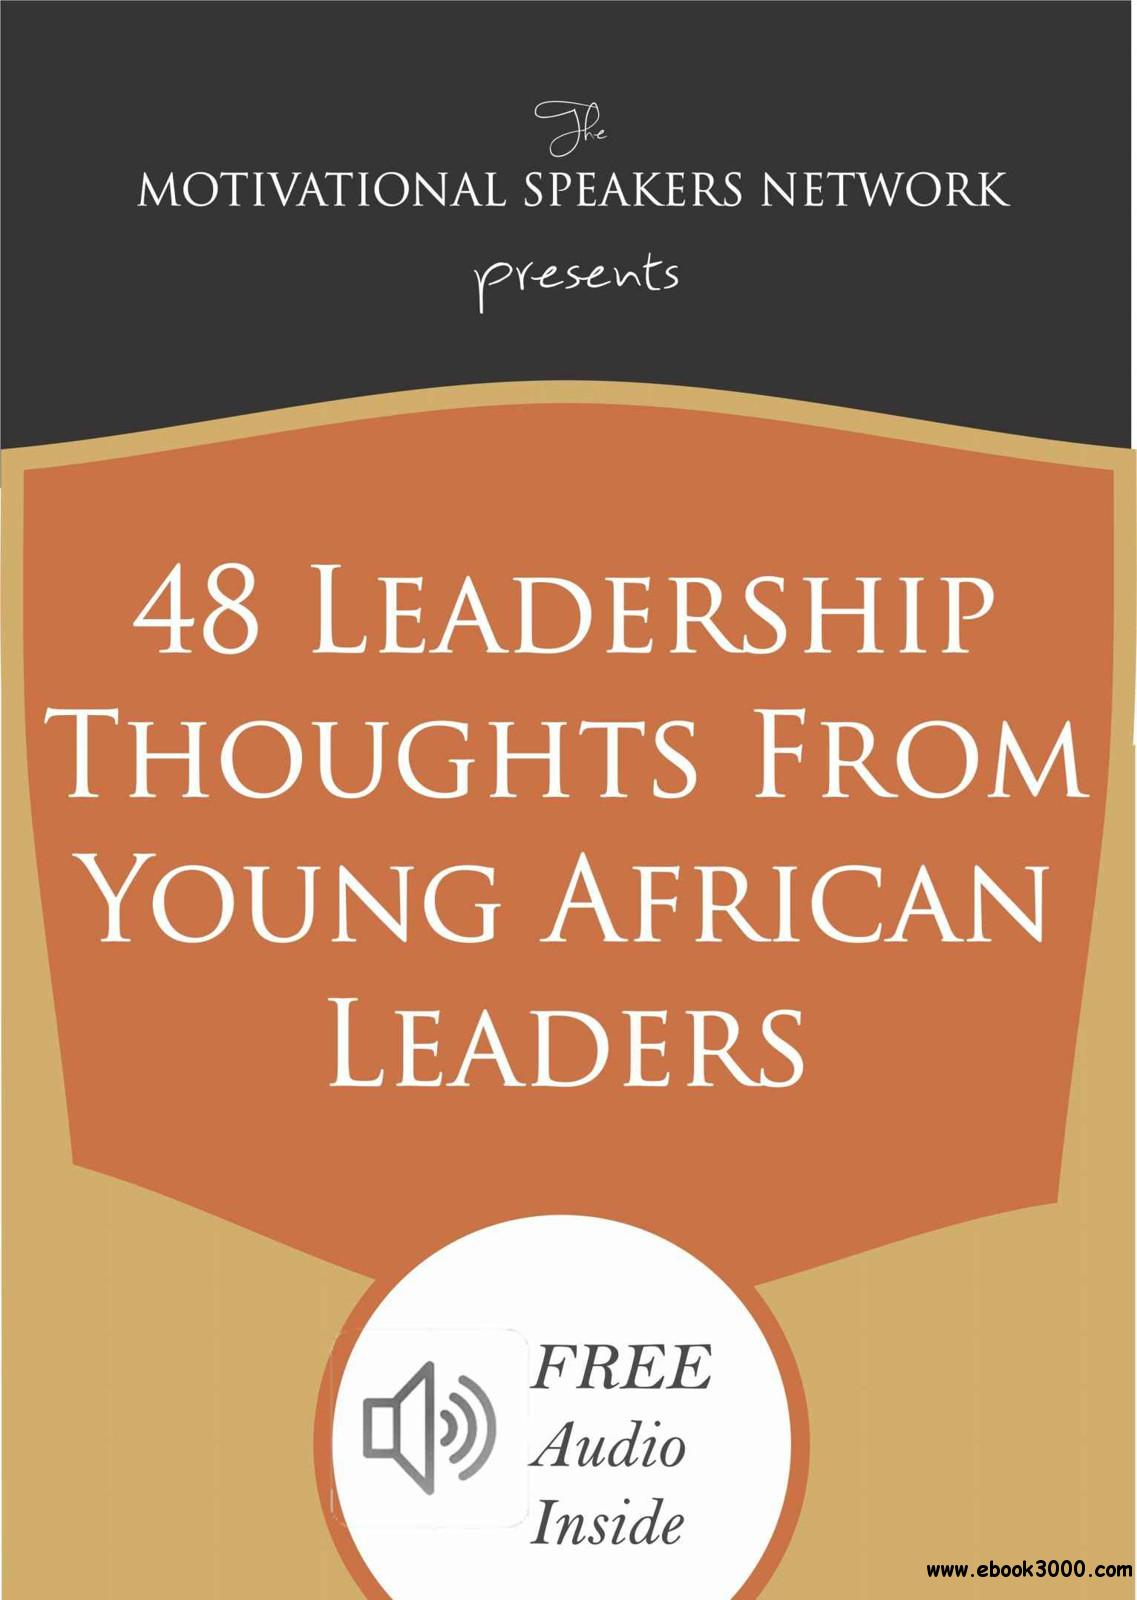 48 Leadership Thoughts from Young African Leaders free download